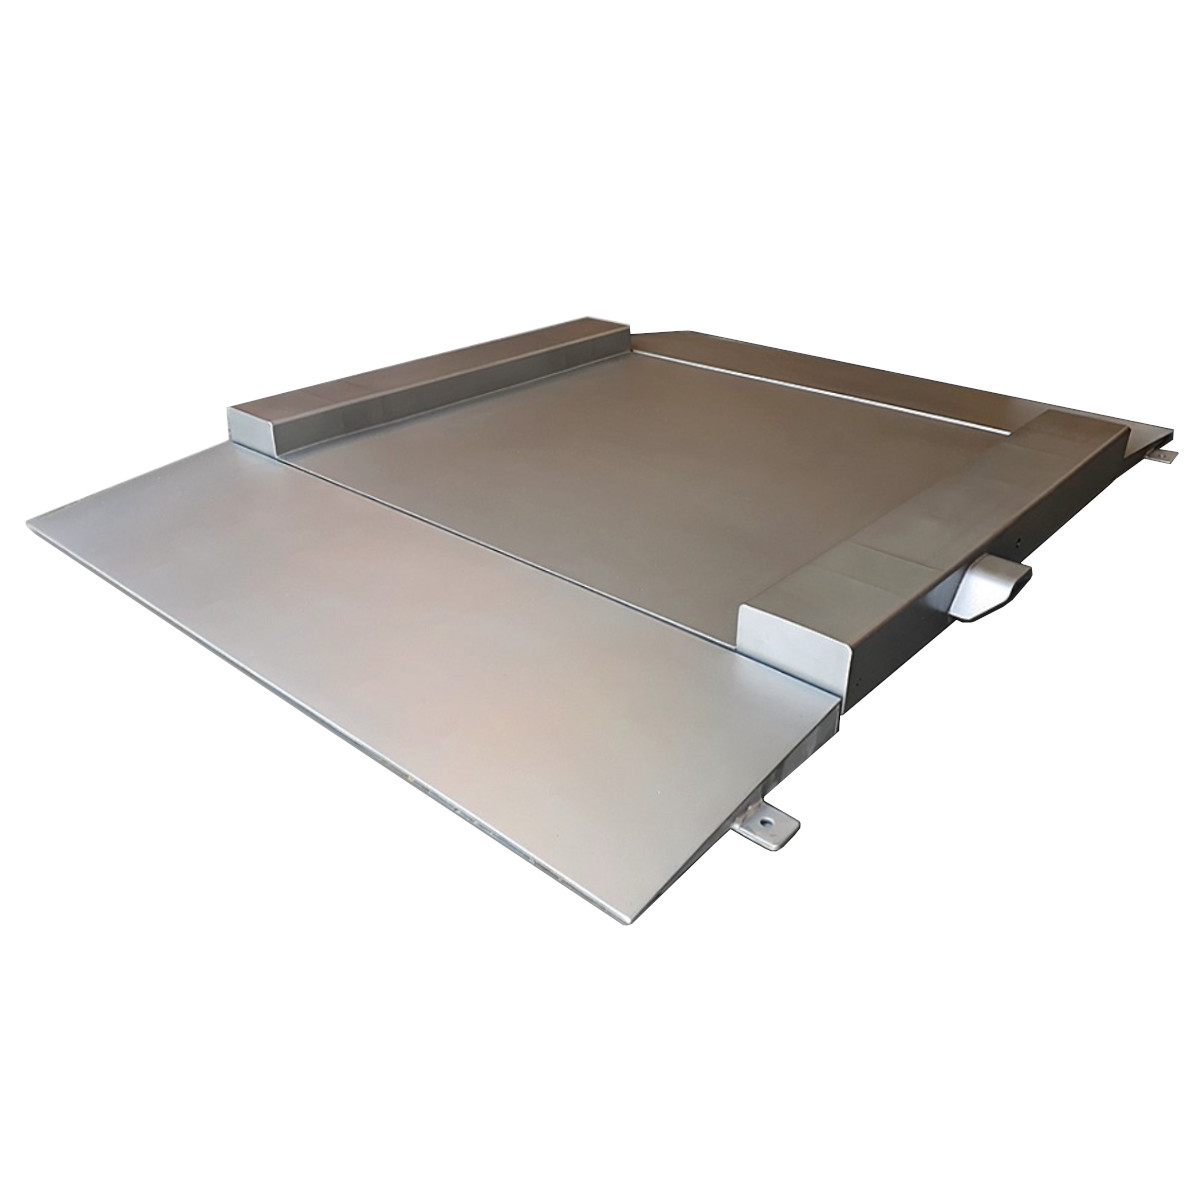 VALUEWEIGH VWDTS STAINLESS DRIVE-THRU PLATFORM | weighingscales.com